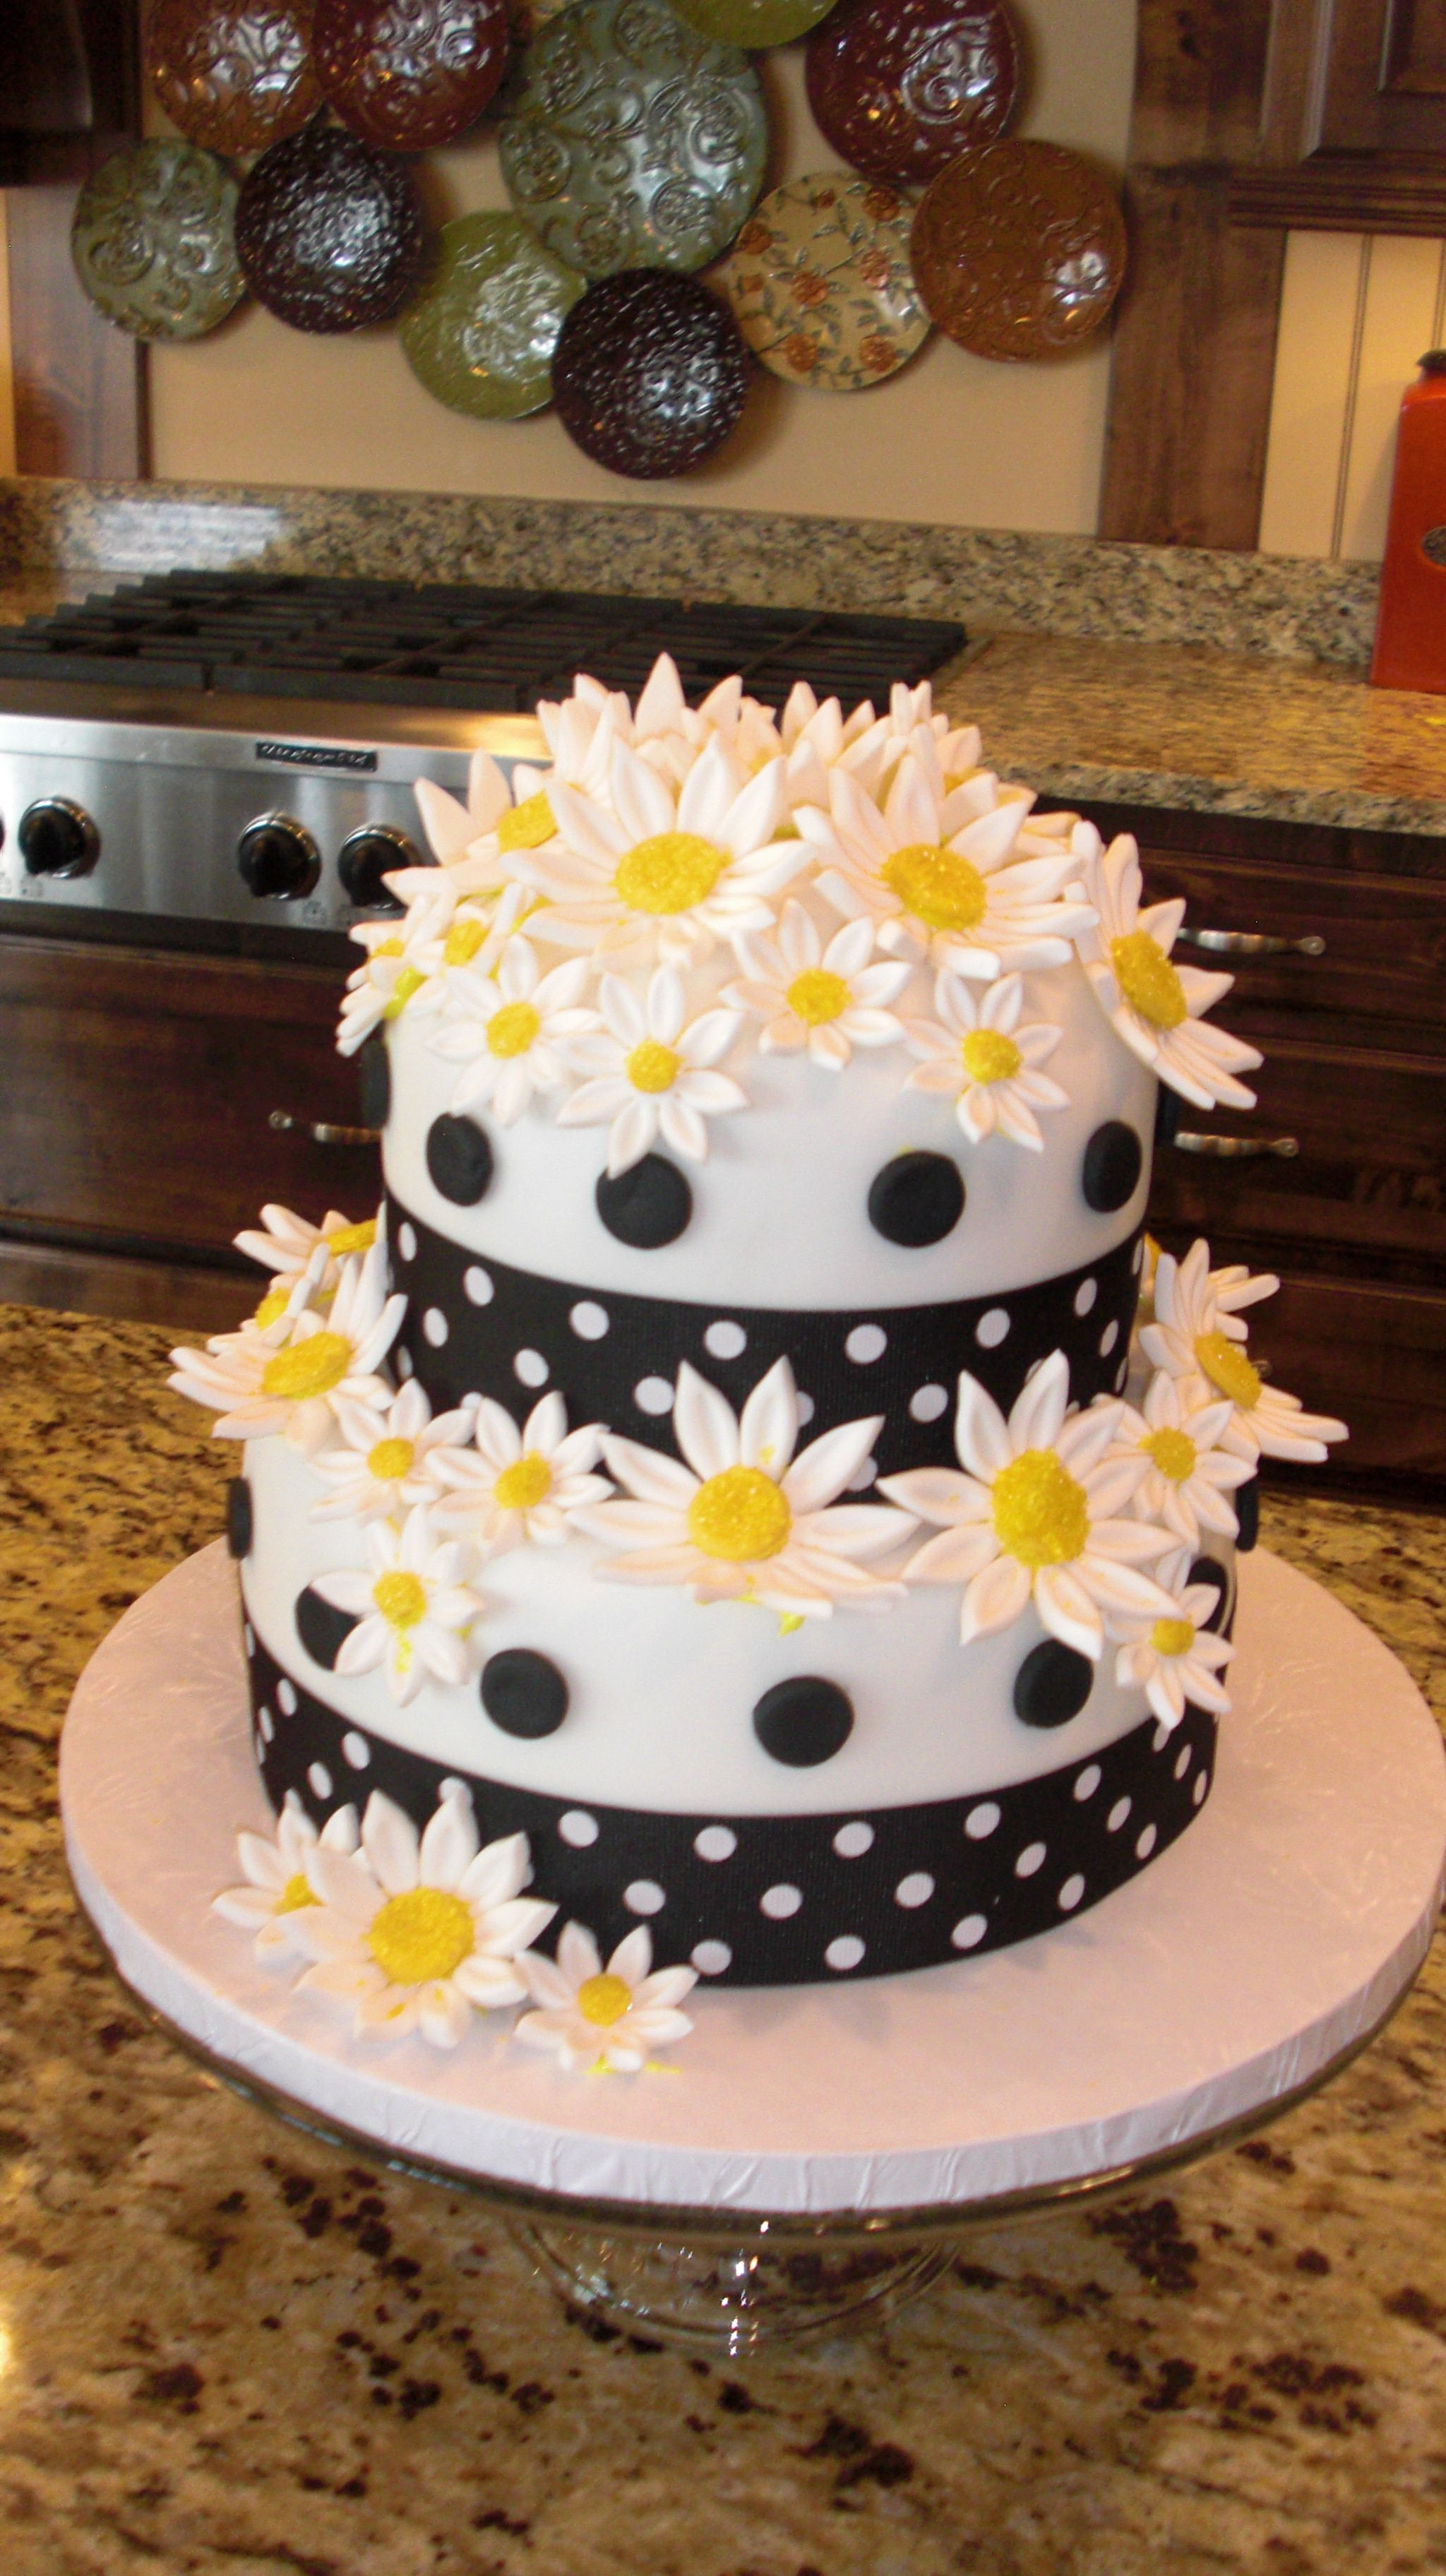 Remarkable Black And White Daisy Birthday Cake I Am Thinking With Red And Funny Birthday Cards Online Alyptdamsfinfo